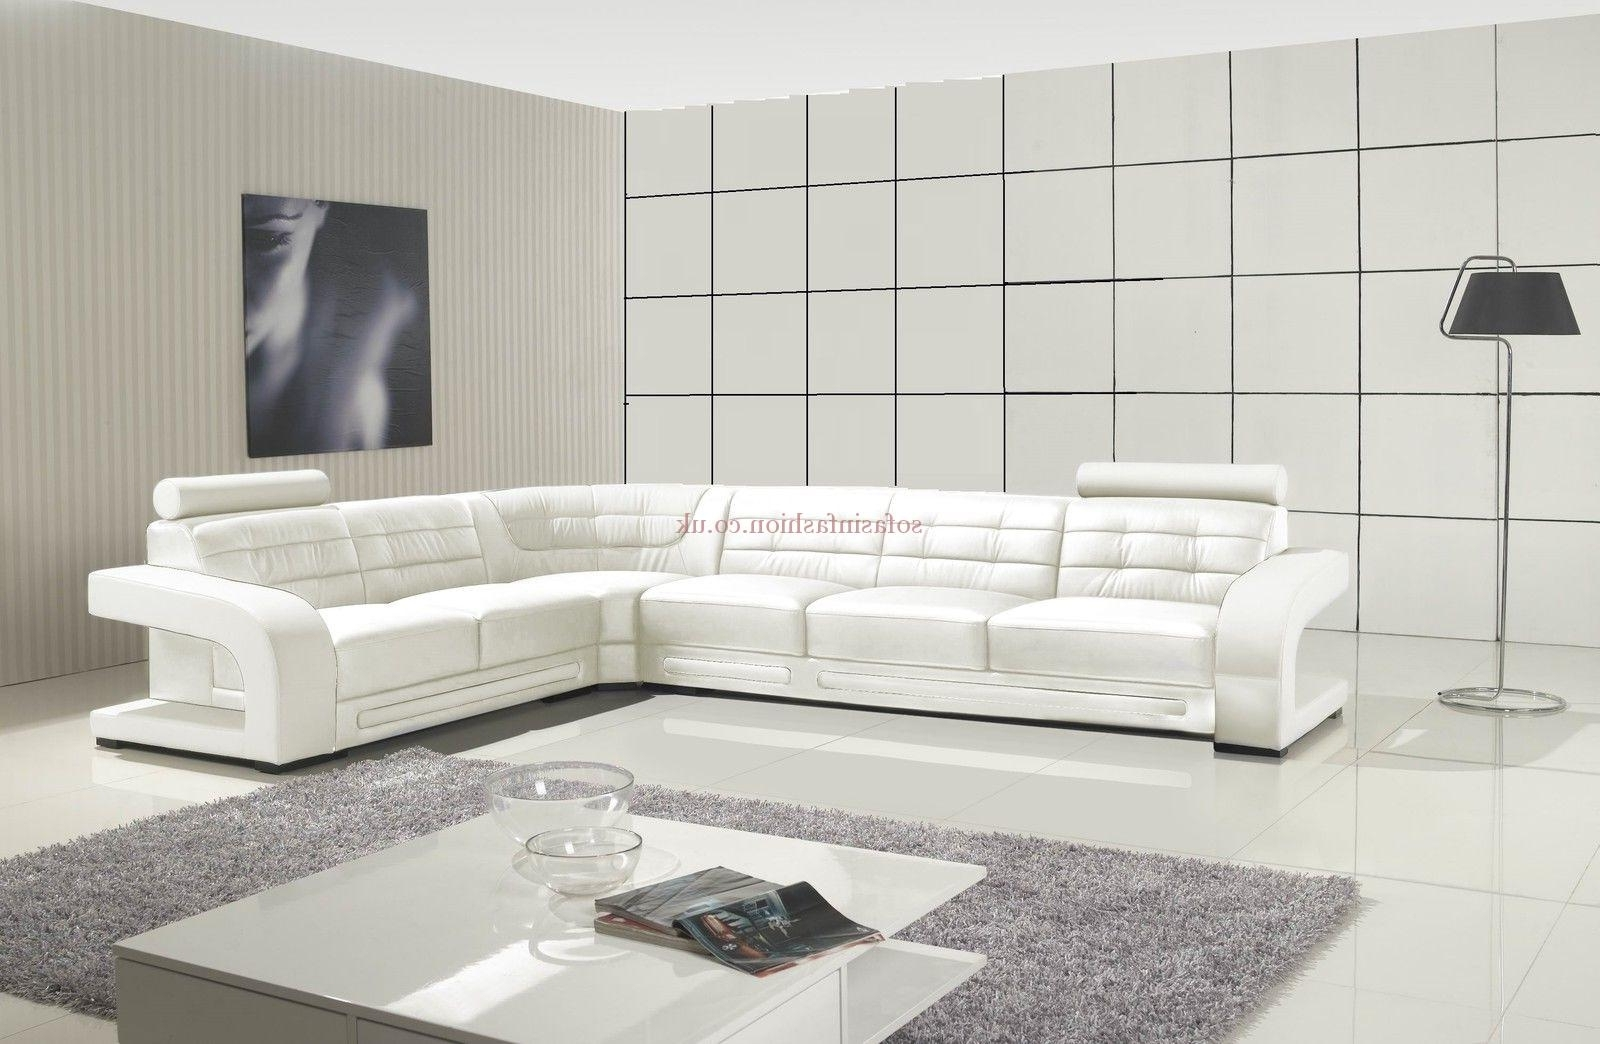 White Leather Corner Sofas Pertaining To Well Known Modern Style White Corner Sofa With White Leather Corner Sofa (View 17 of 20)